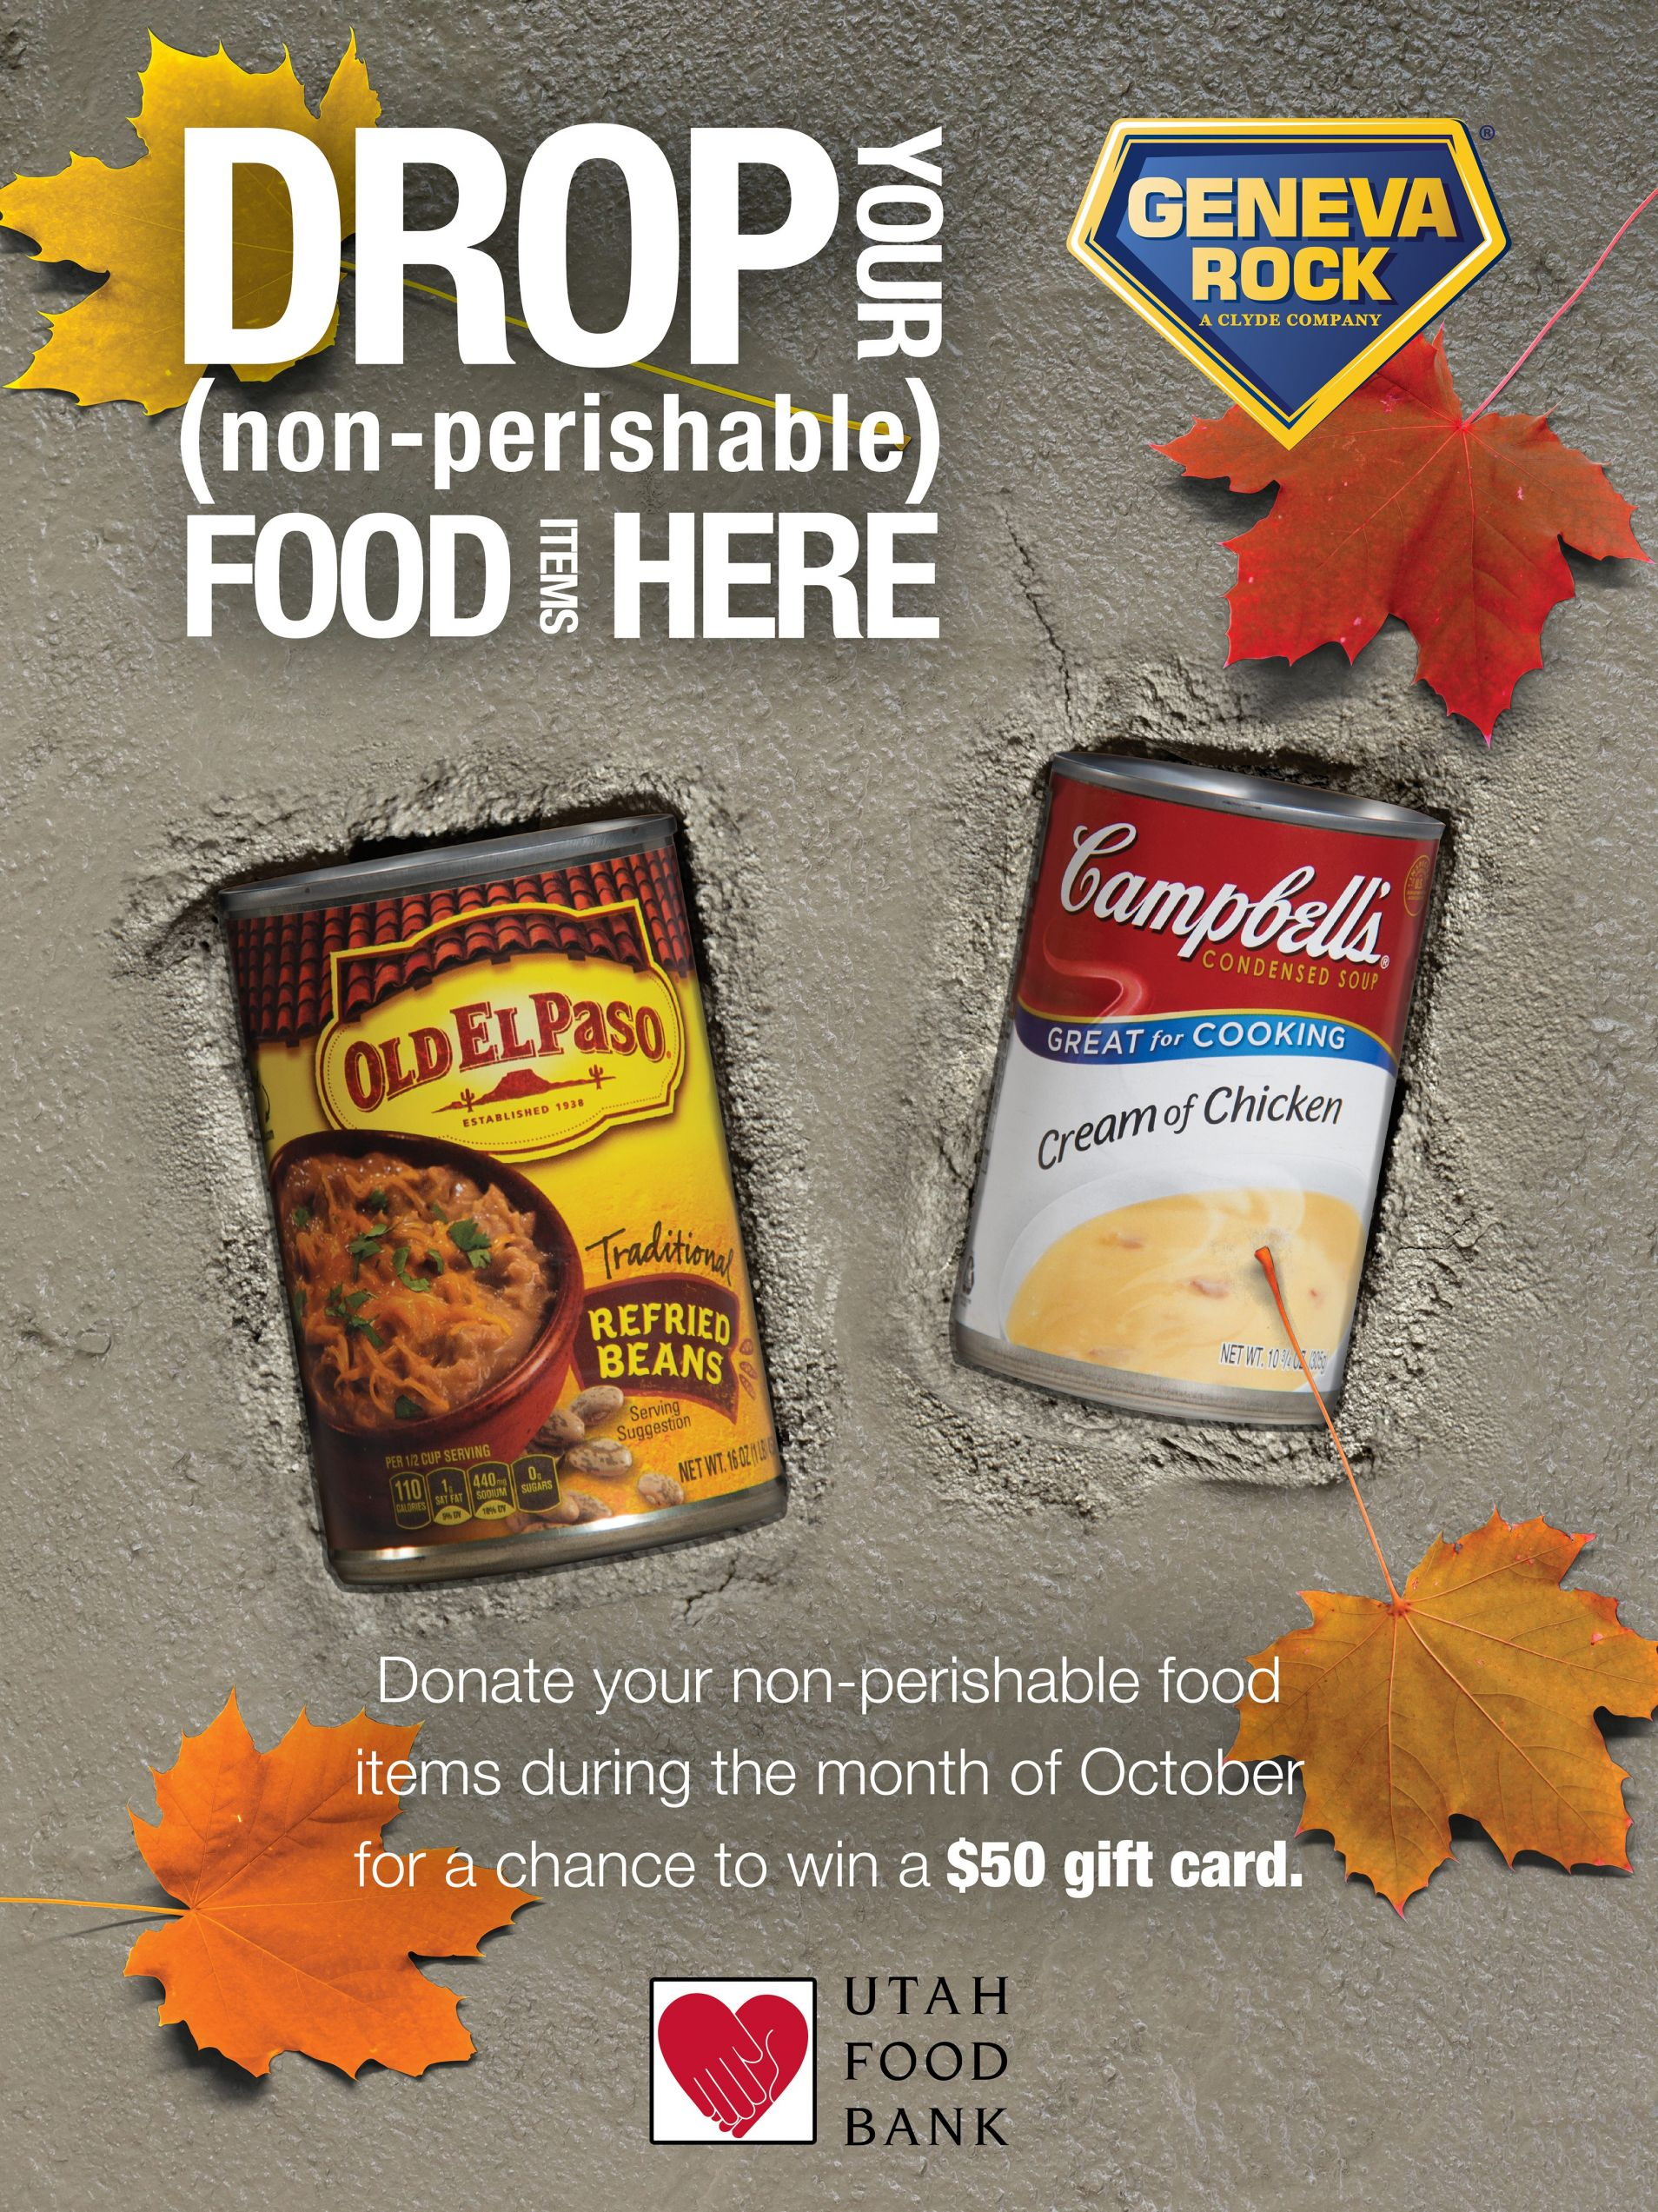 Geneva Rock Products Hosts October-Feast Food Drive